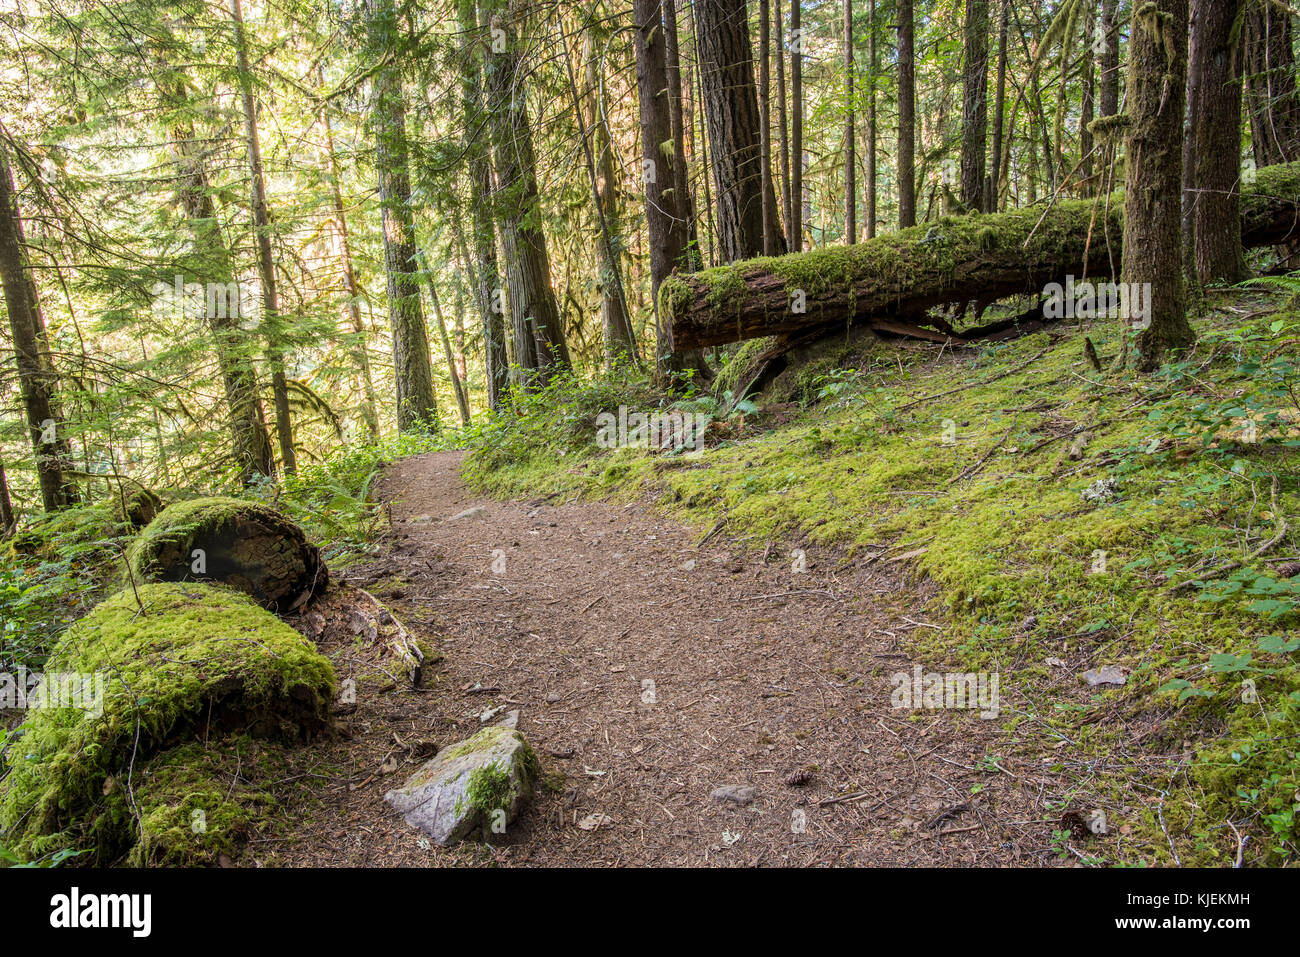 Trail Winds Through Thick Oregon Forest covered in moss - Stock Image